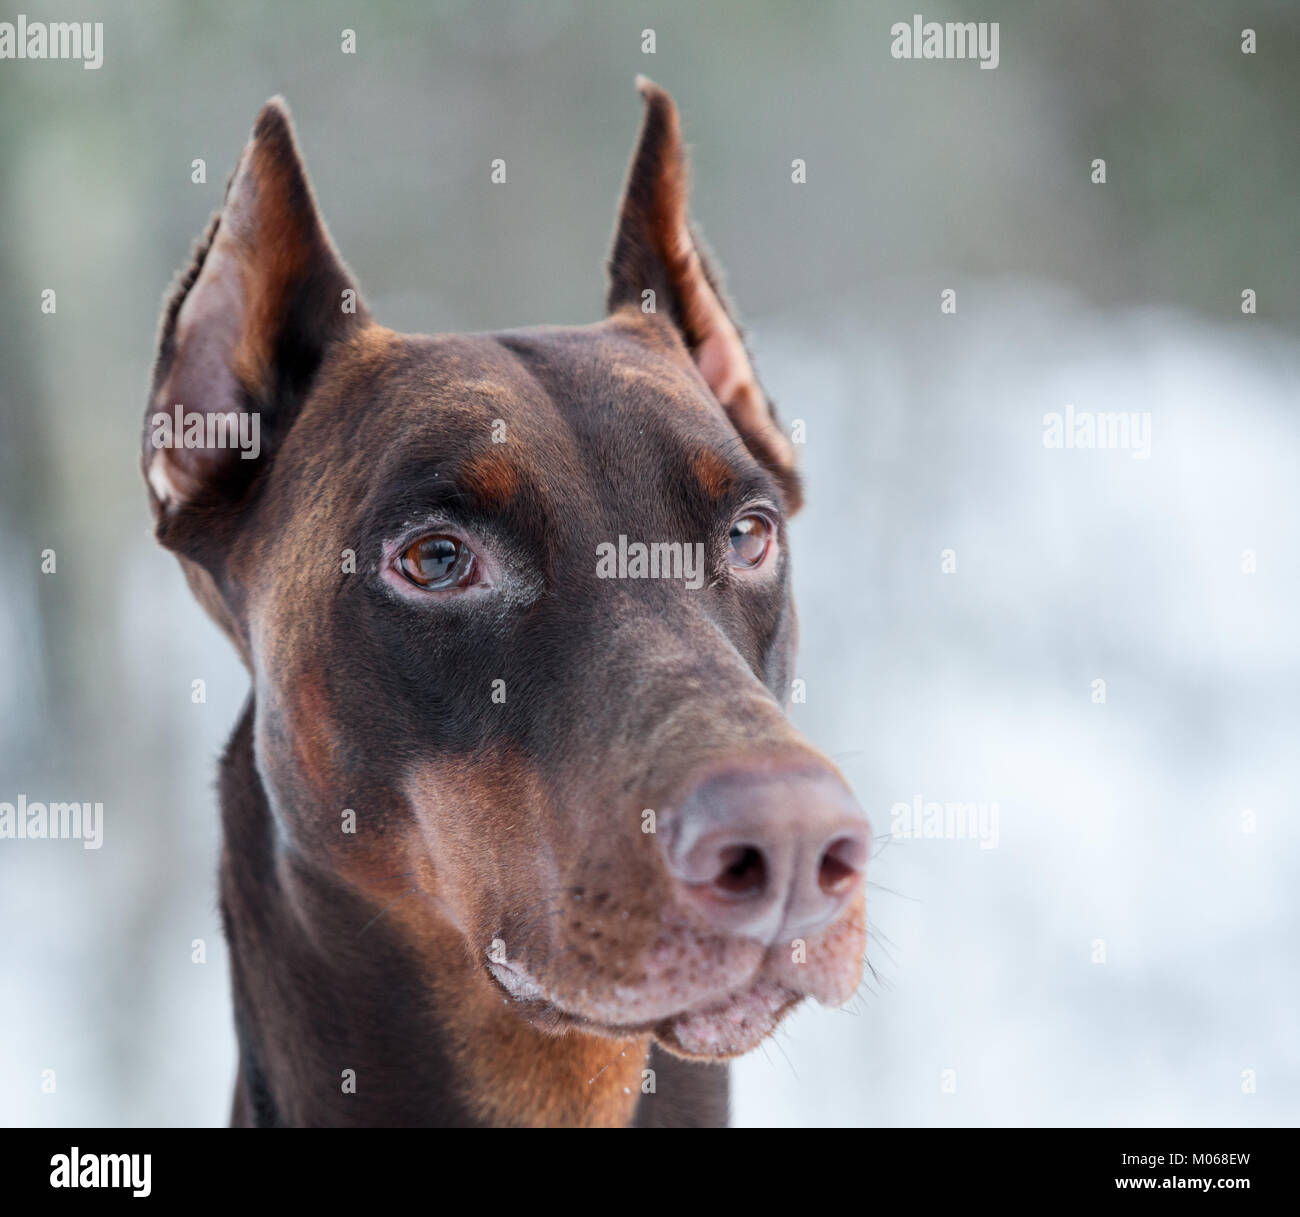 Brown doberman dog muzzle with watchful ears, close up view - Stock Image